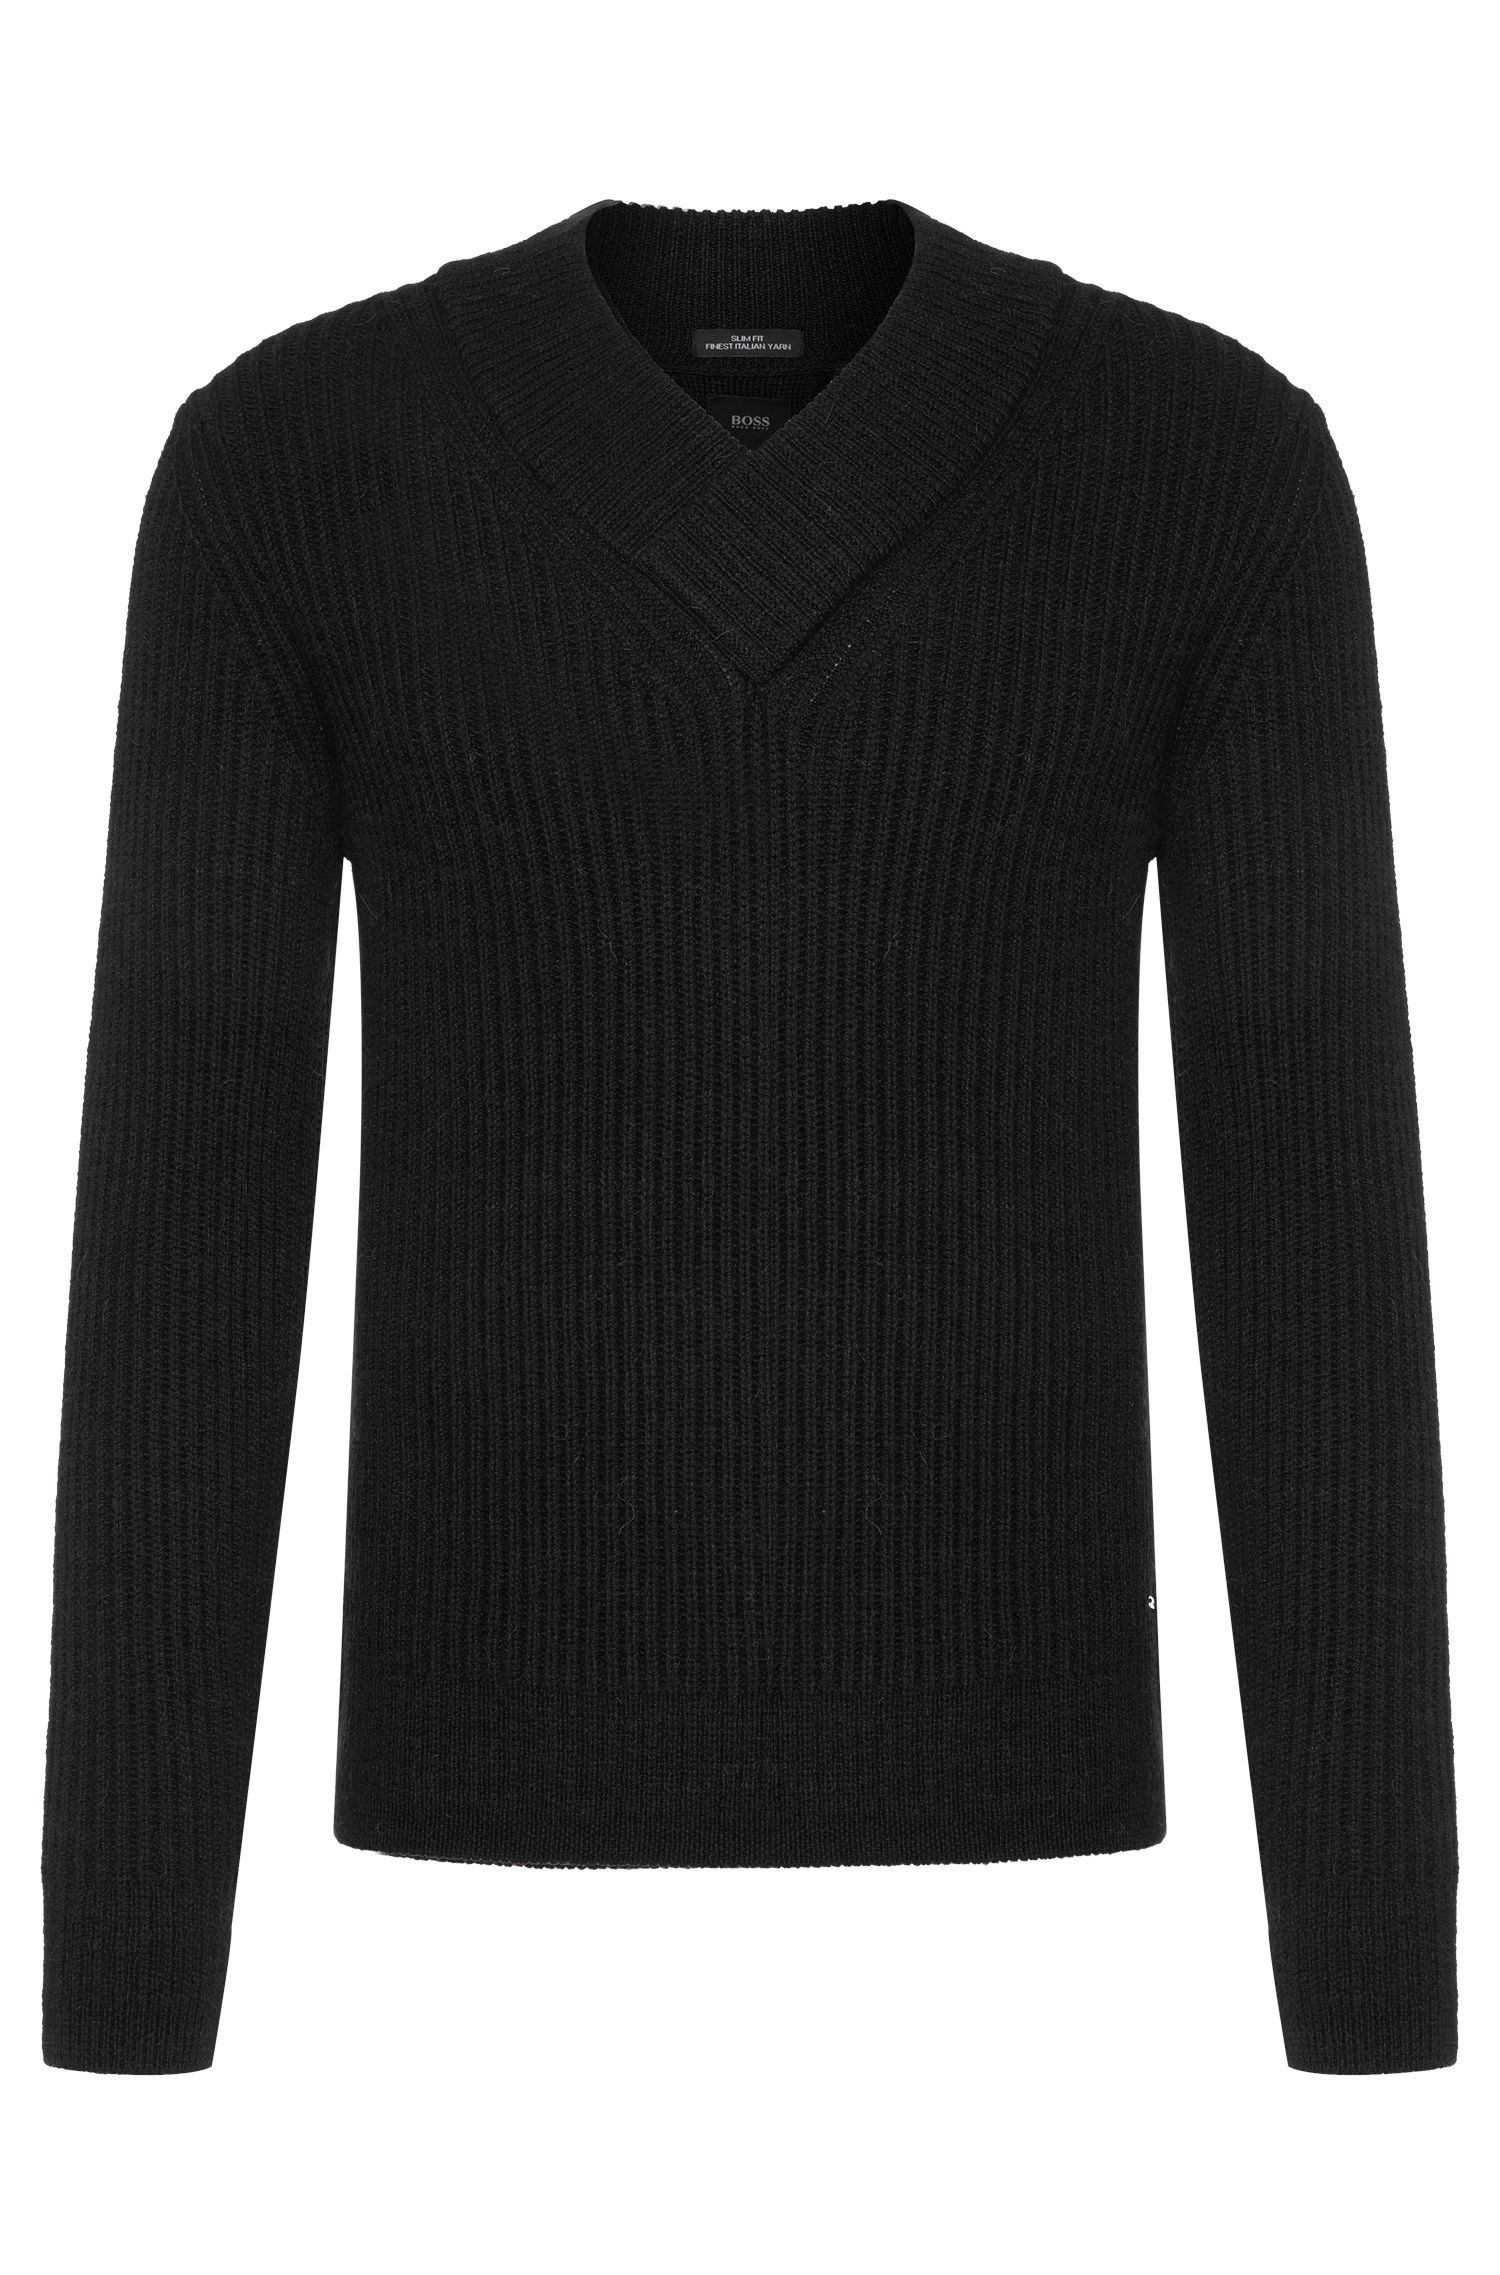 Slim-Fit Tailored Pullover aus Schurwoll-Mix mit Alpaka-Anteil: 'T-Bressano'